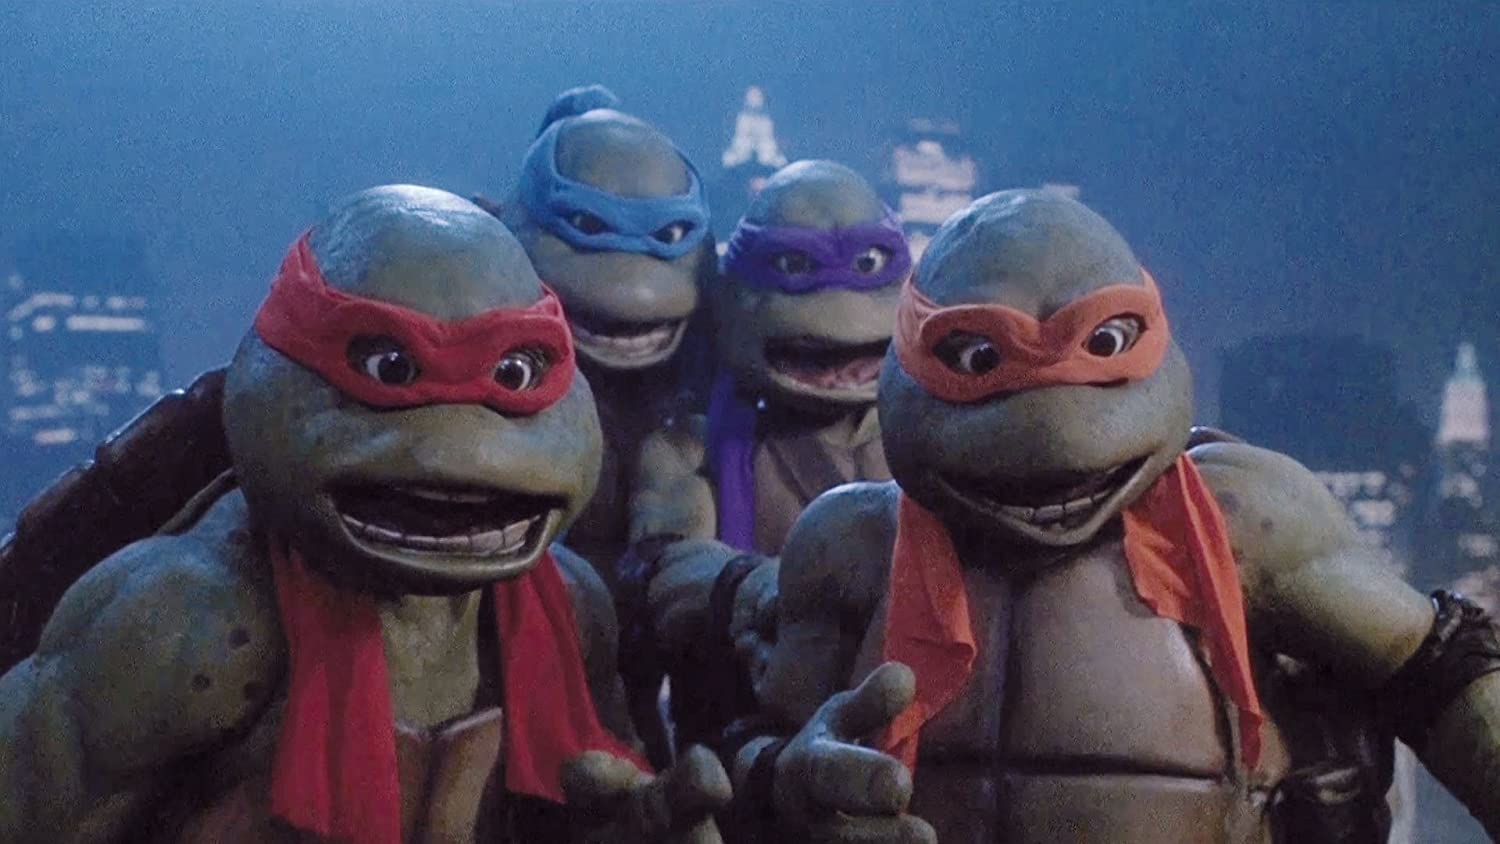 Amazon.com: Turtles 2 - Das Geheimnis der Ooze: Movies & TV